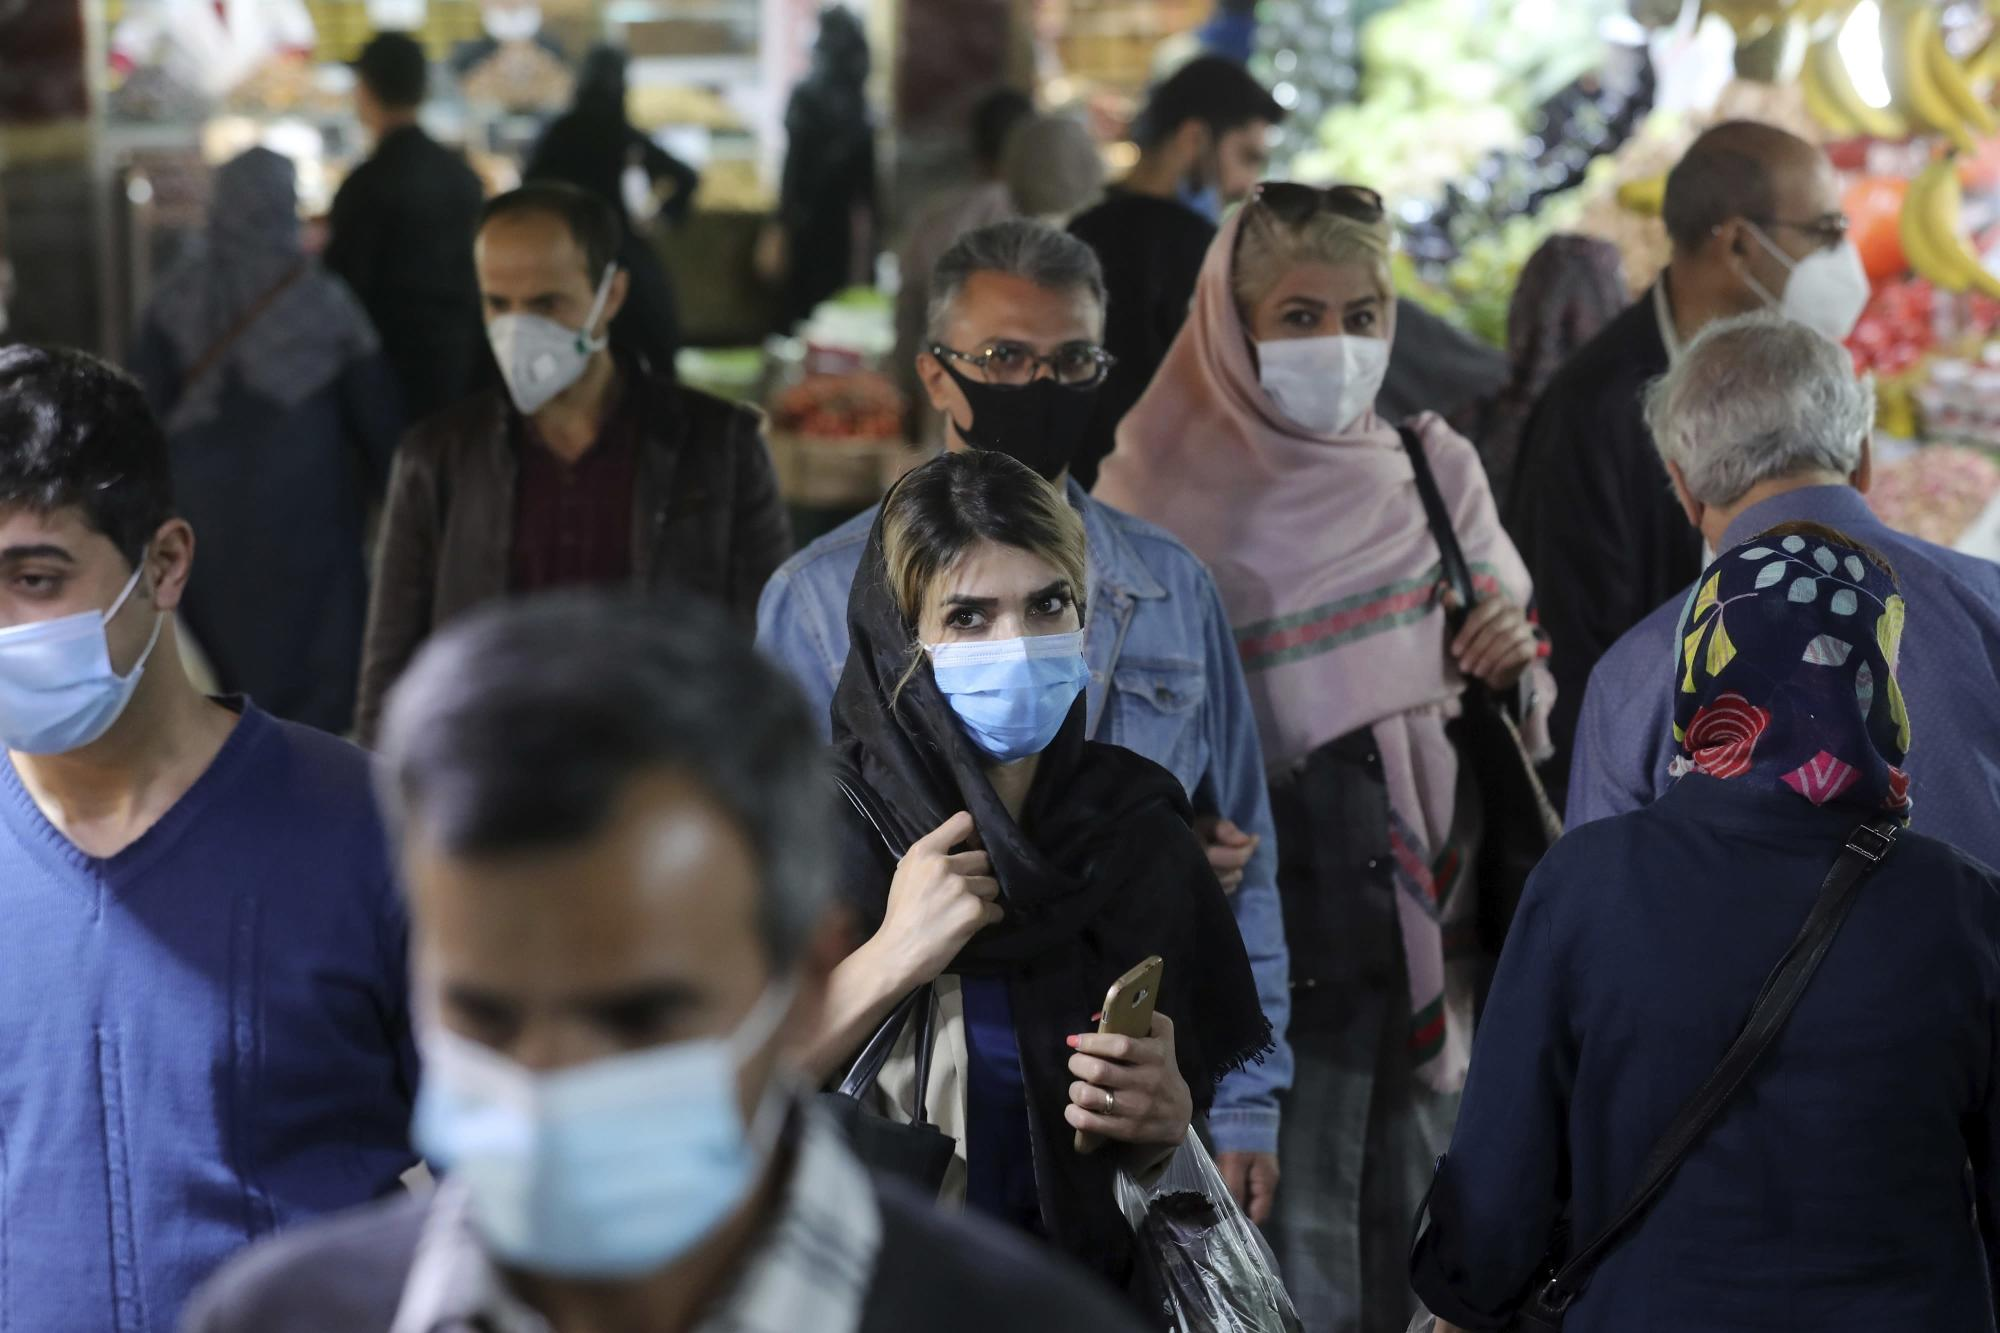 Wary of angering public, Iran has few ways to contain virus